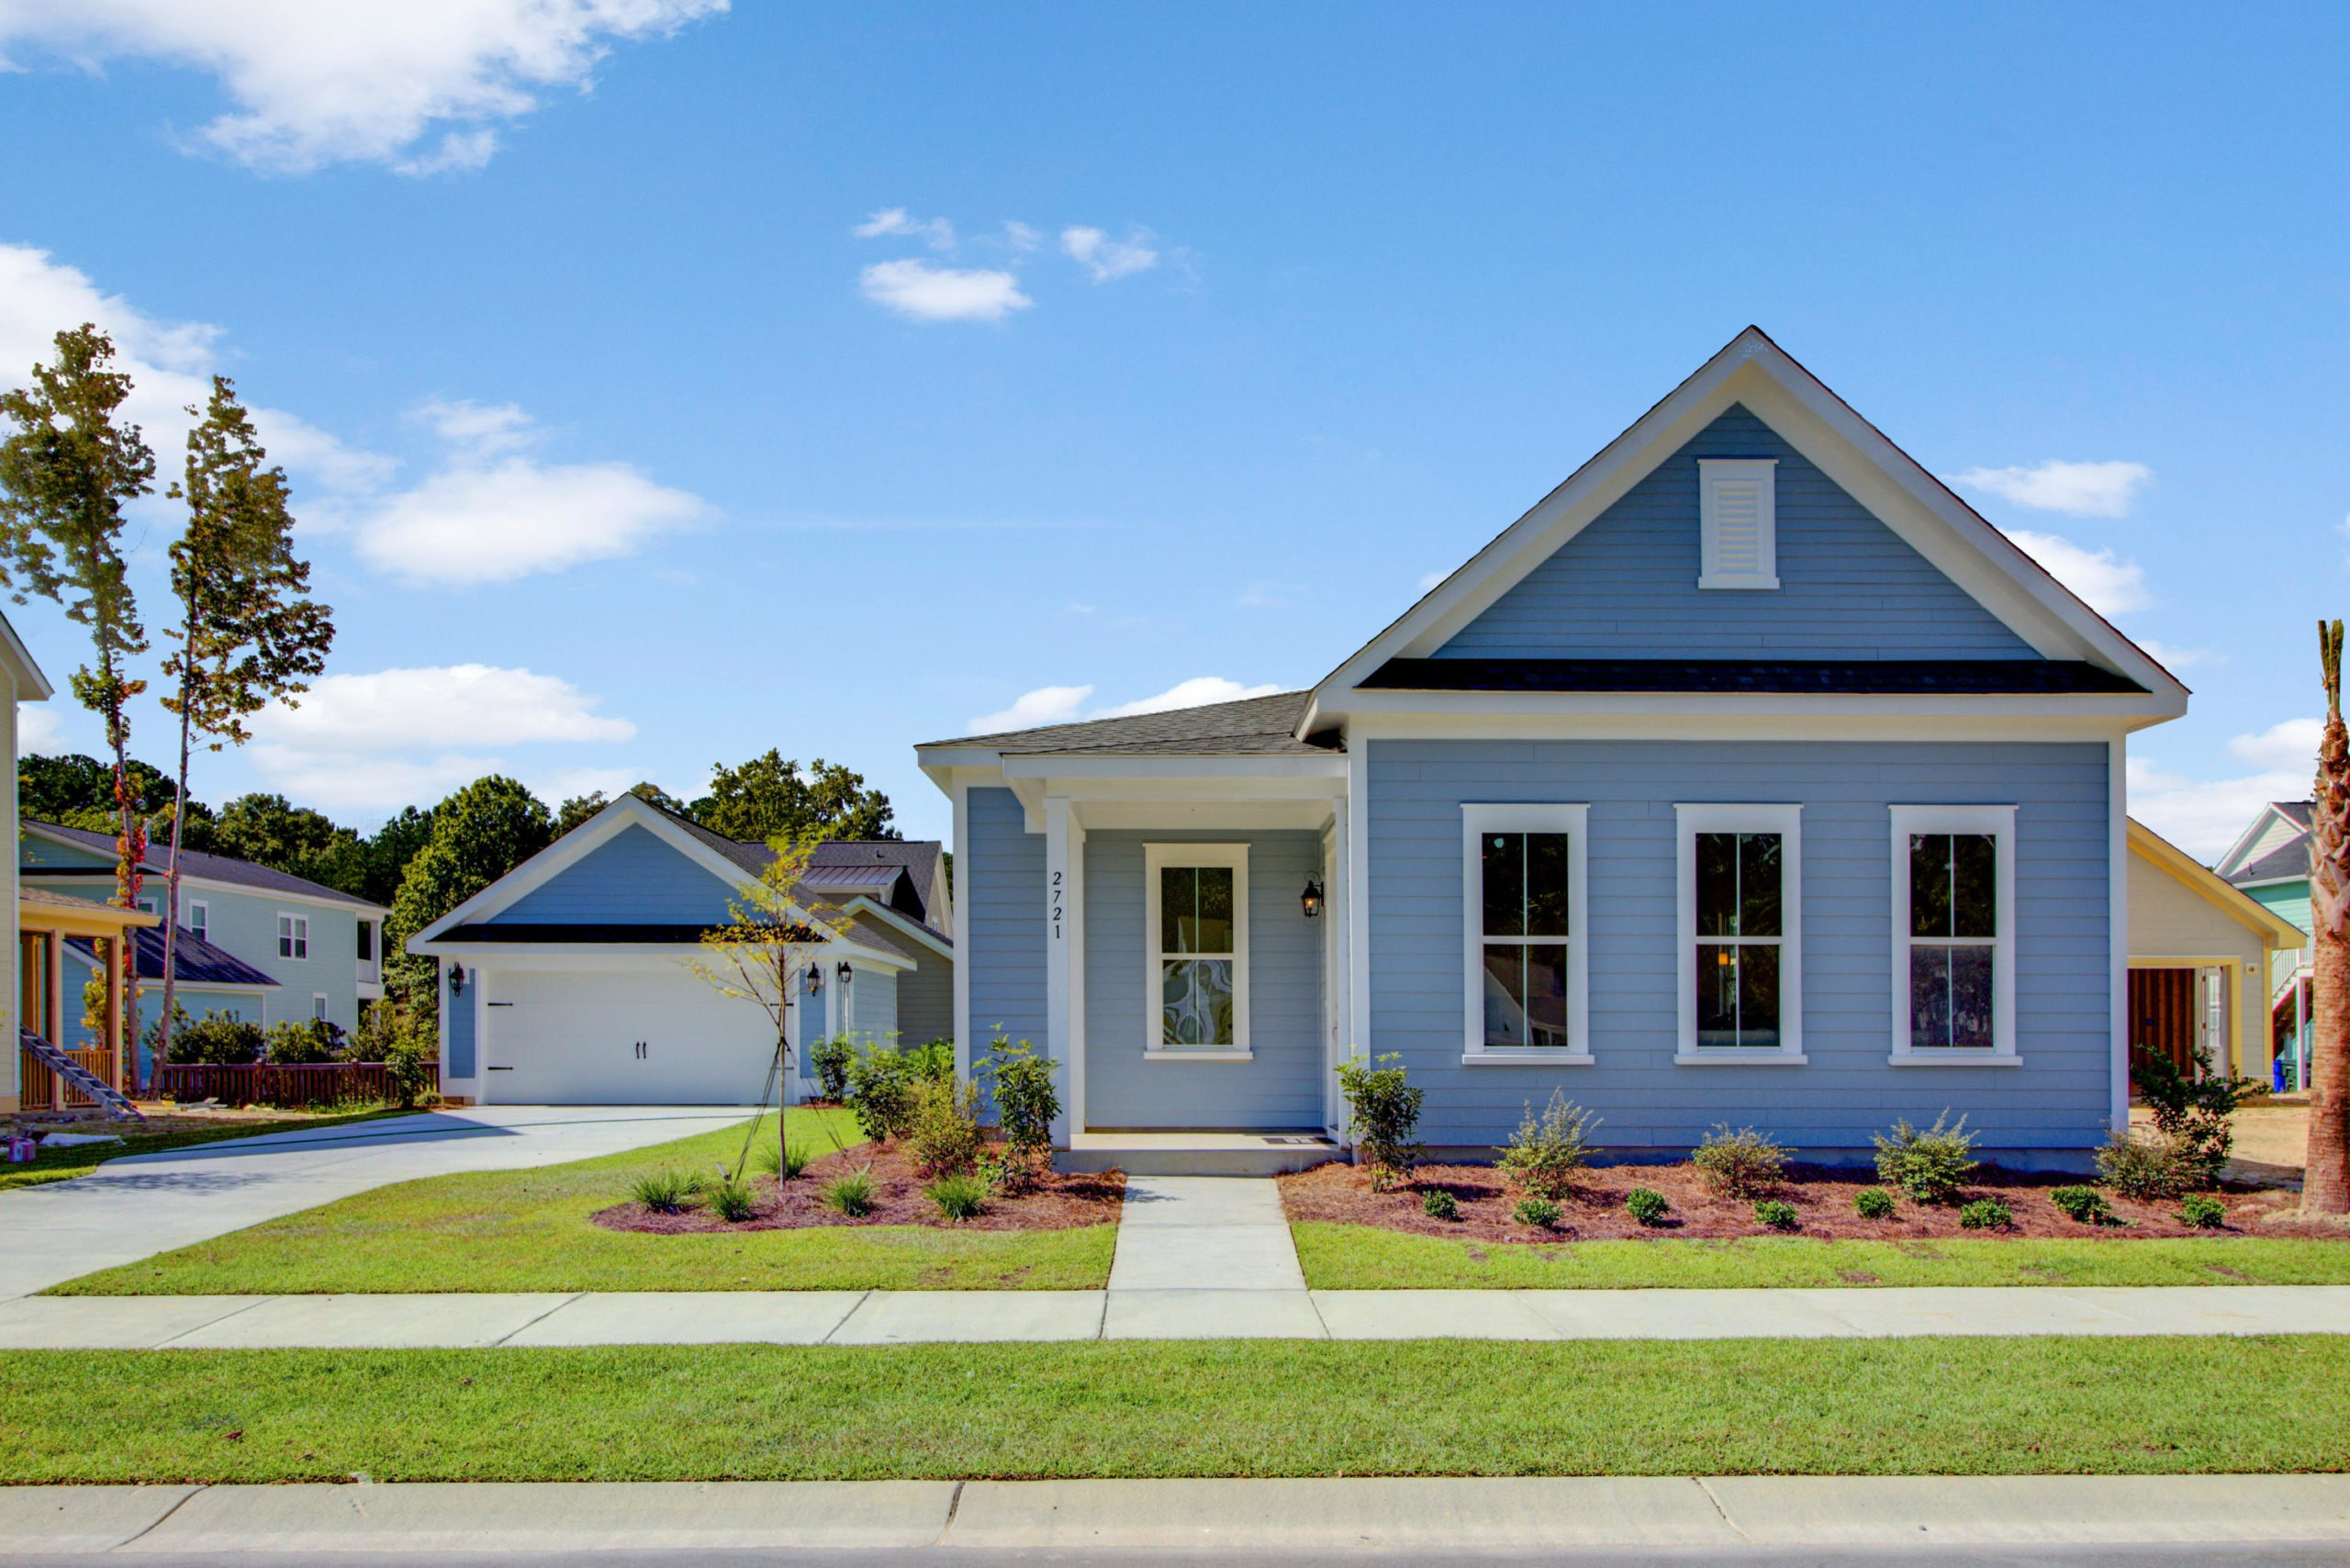 243 Summers Drive | The Sassafras by Stanley Martin Homes, New Homes in South Carolina